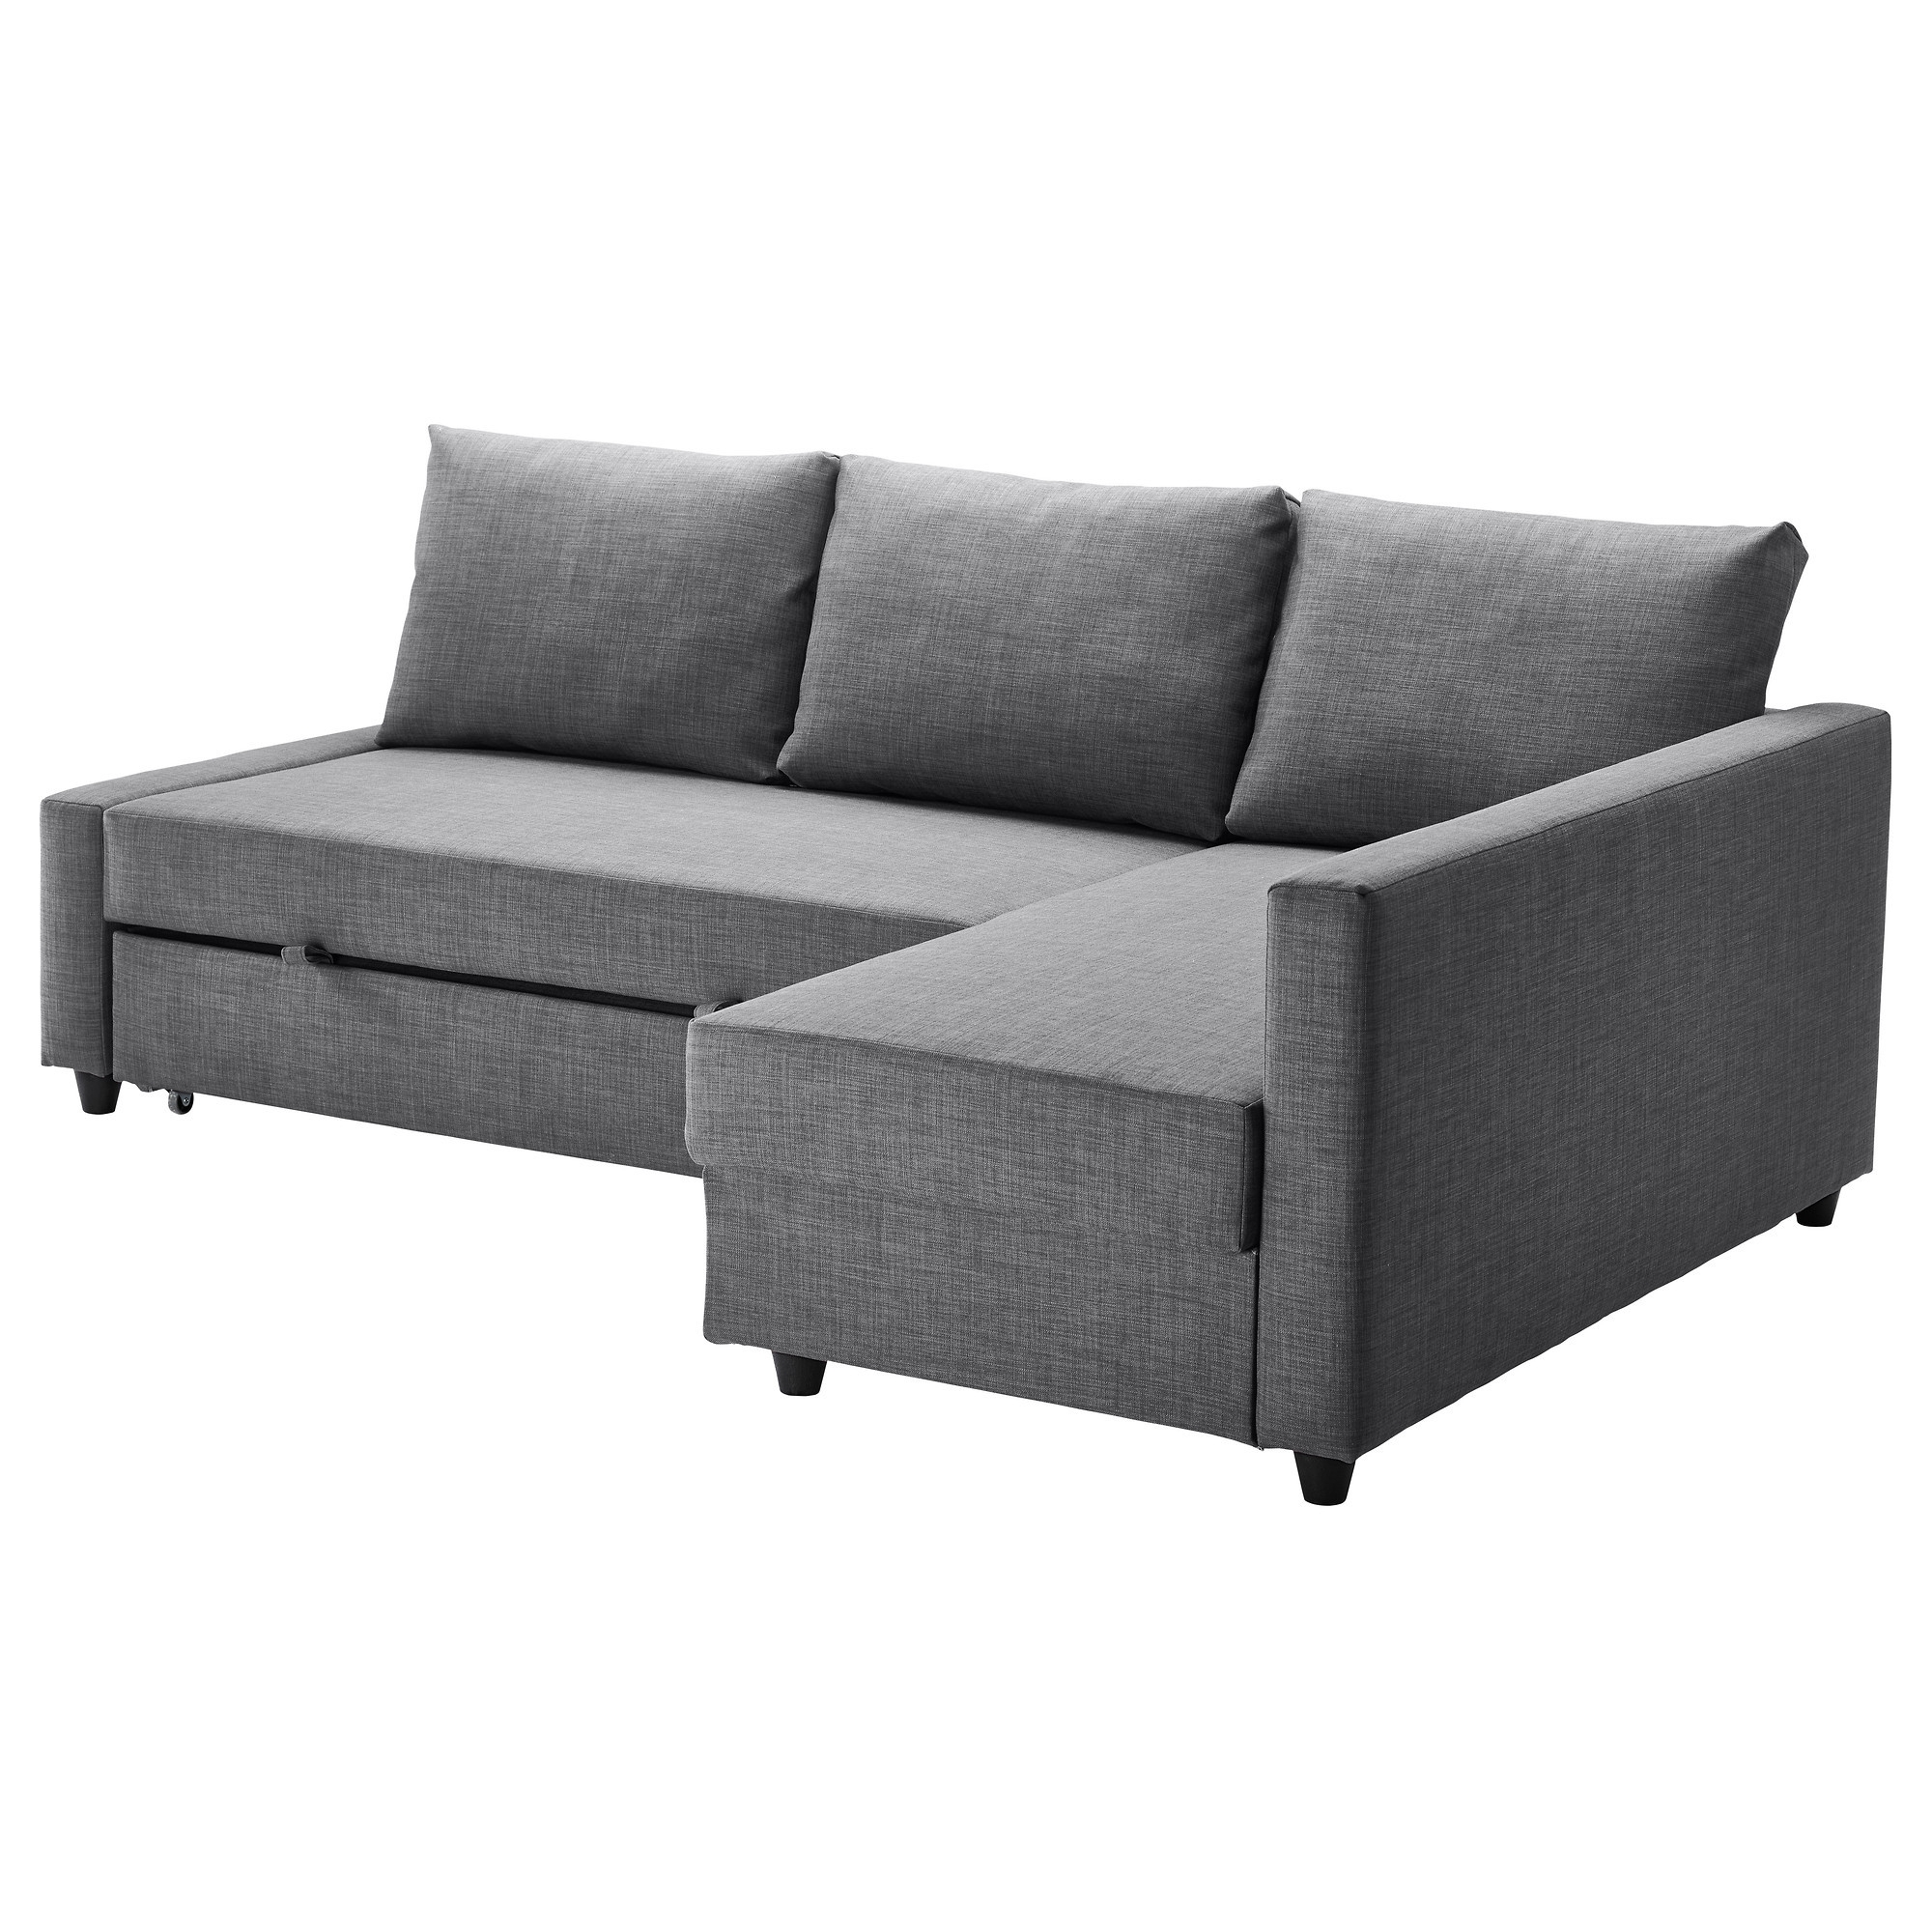 Interesting Sectional Sleeper Sofa Ikea Awesome Cheap Furniture With Regard To Ikea Sectional Sleeper Sofas (View 8 of 10)